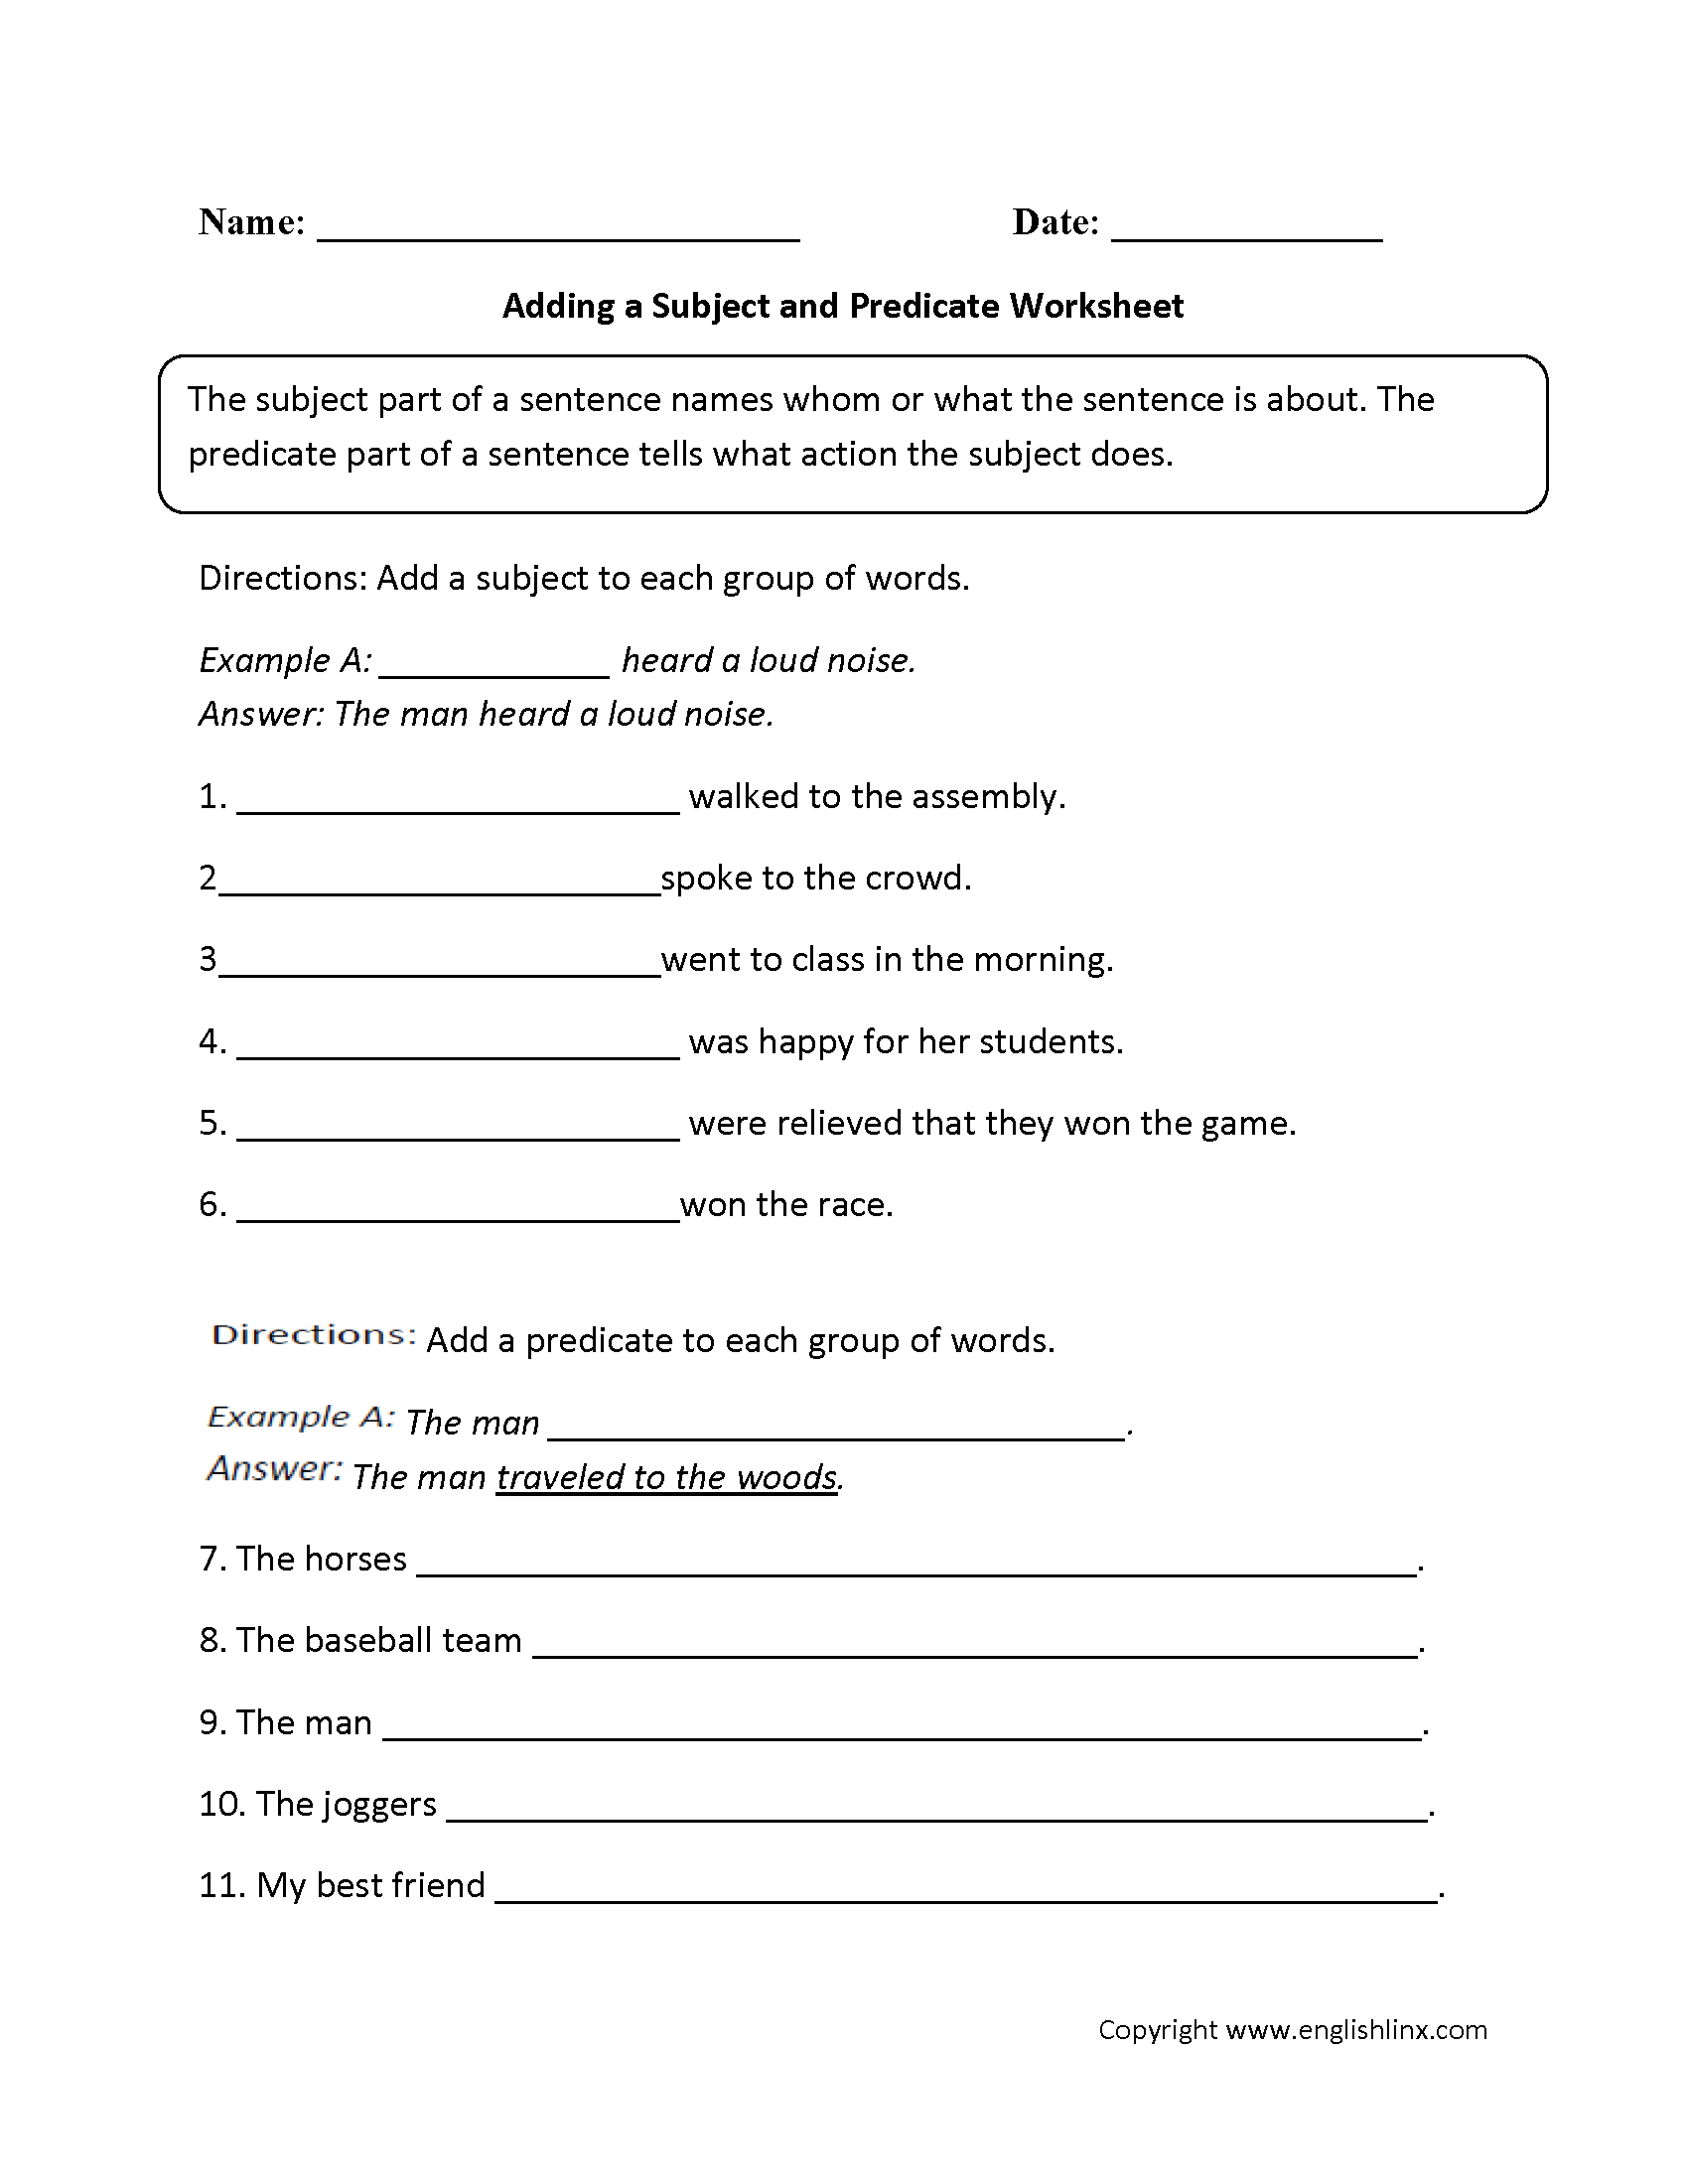 Adding A Subject And Predicate Worksheet